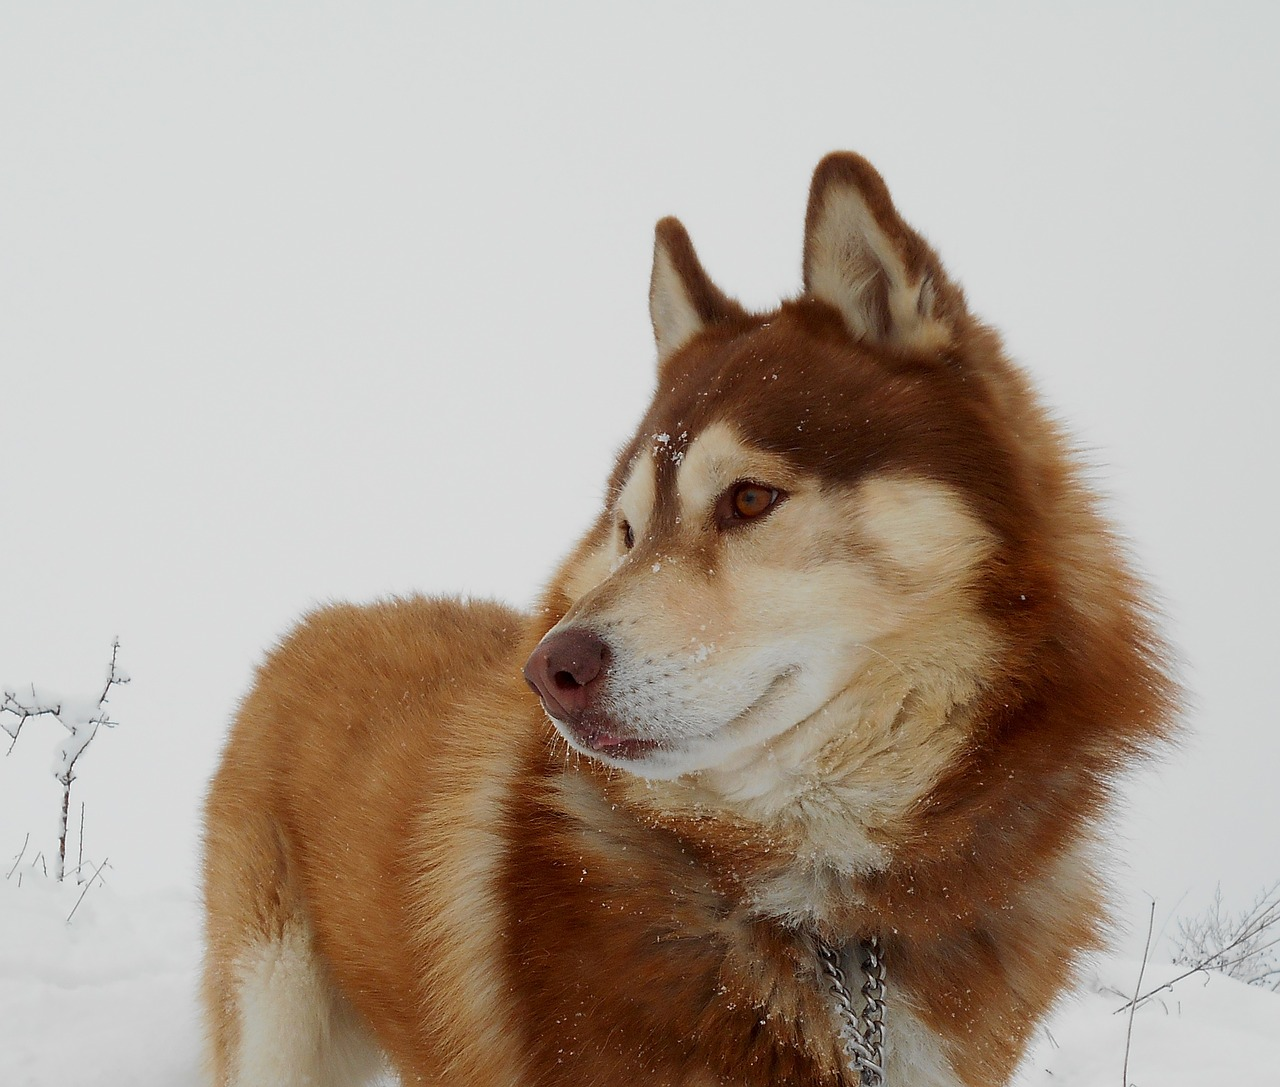 siberian husky, dog, pet